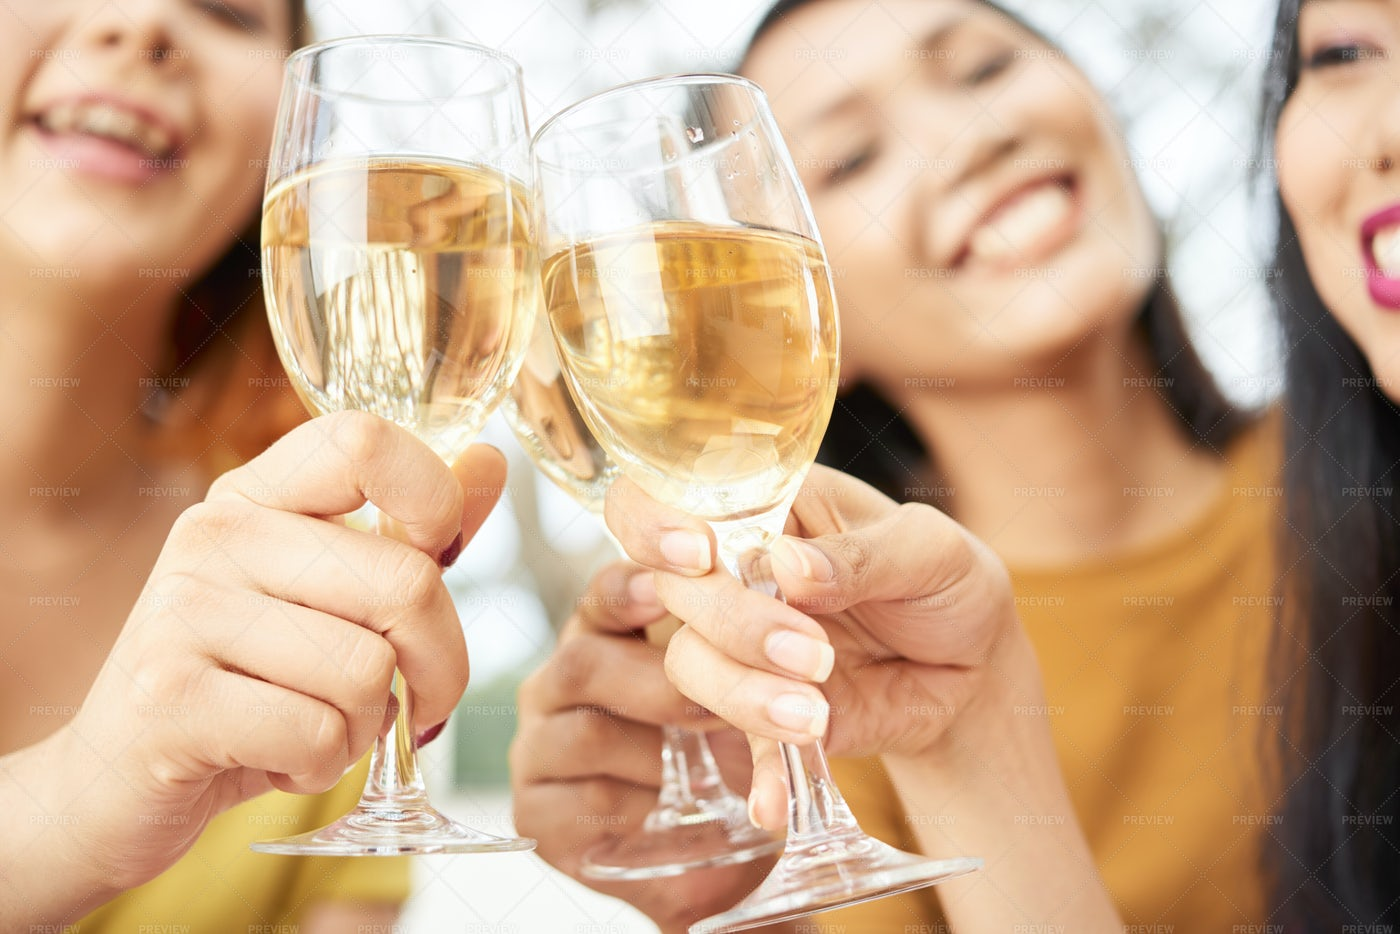 Women Toasting With Champagne: Stock Photos